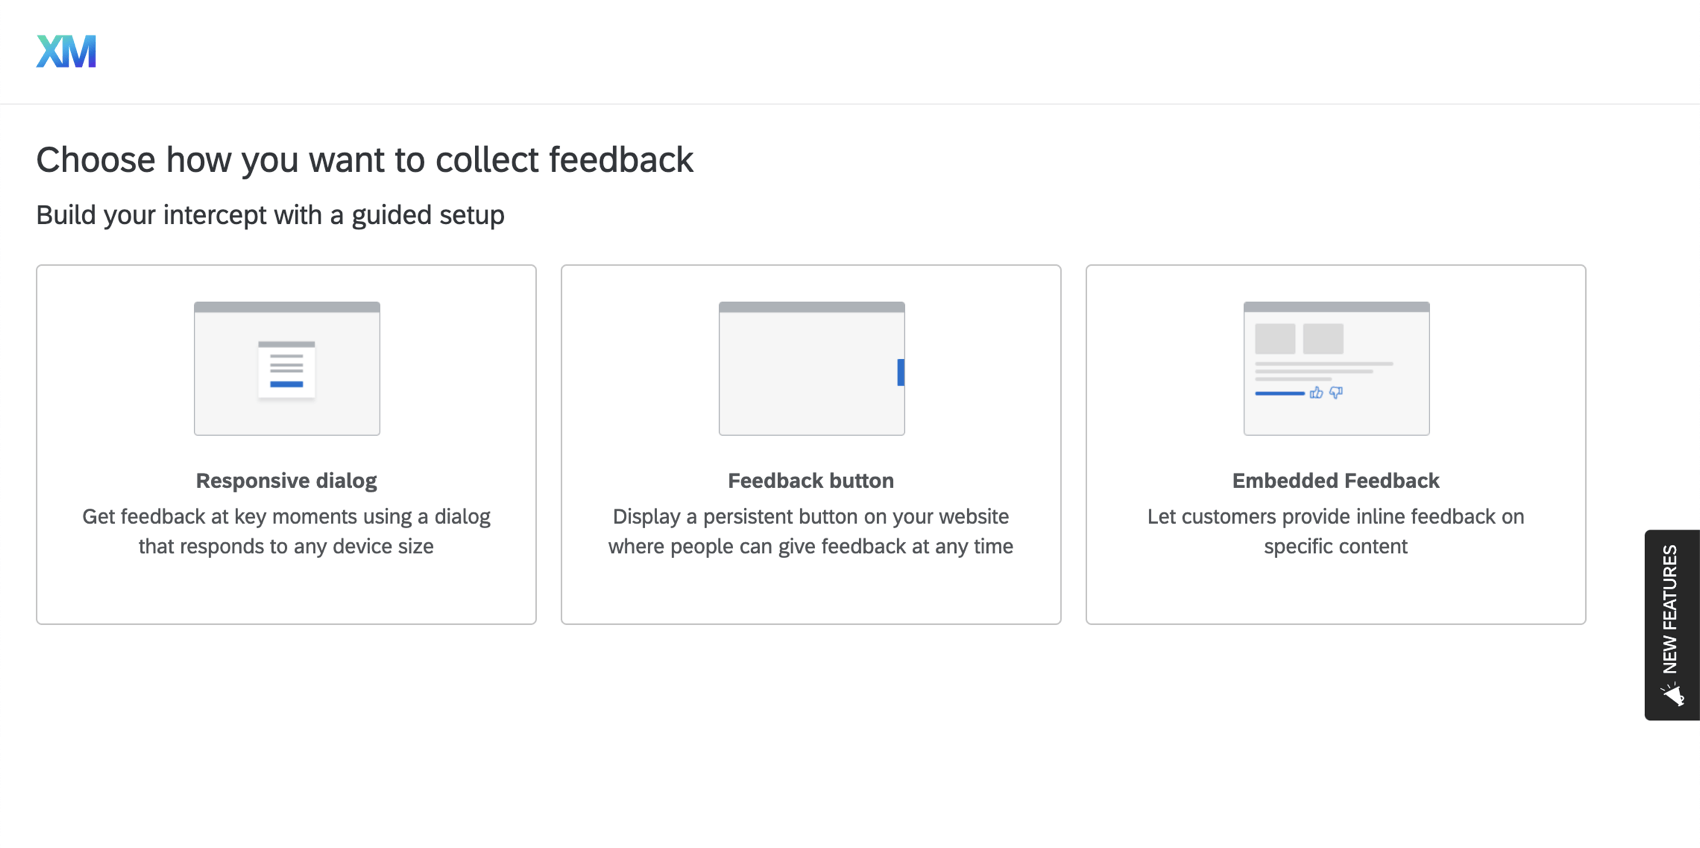 Website app feedback option on the distributions page, where you choose from various feedback options